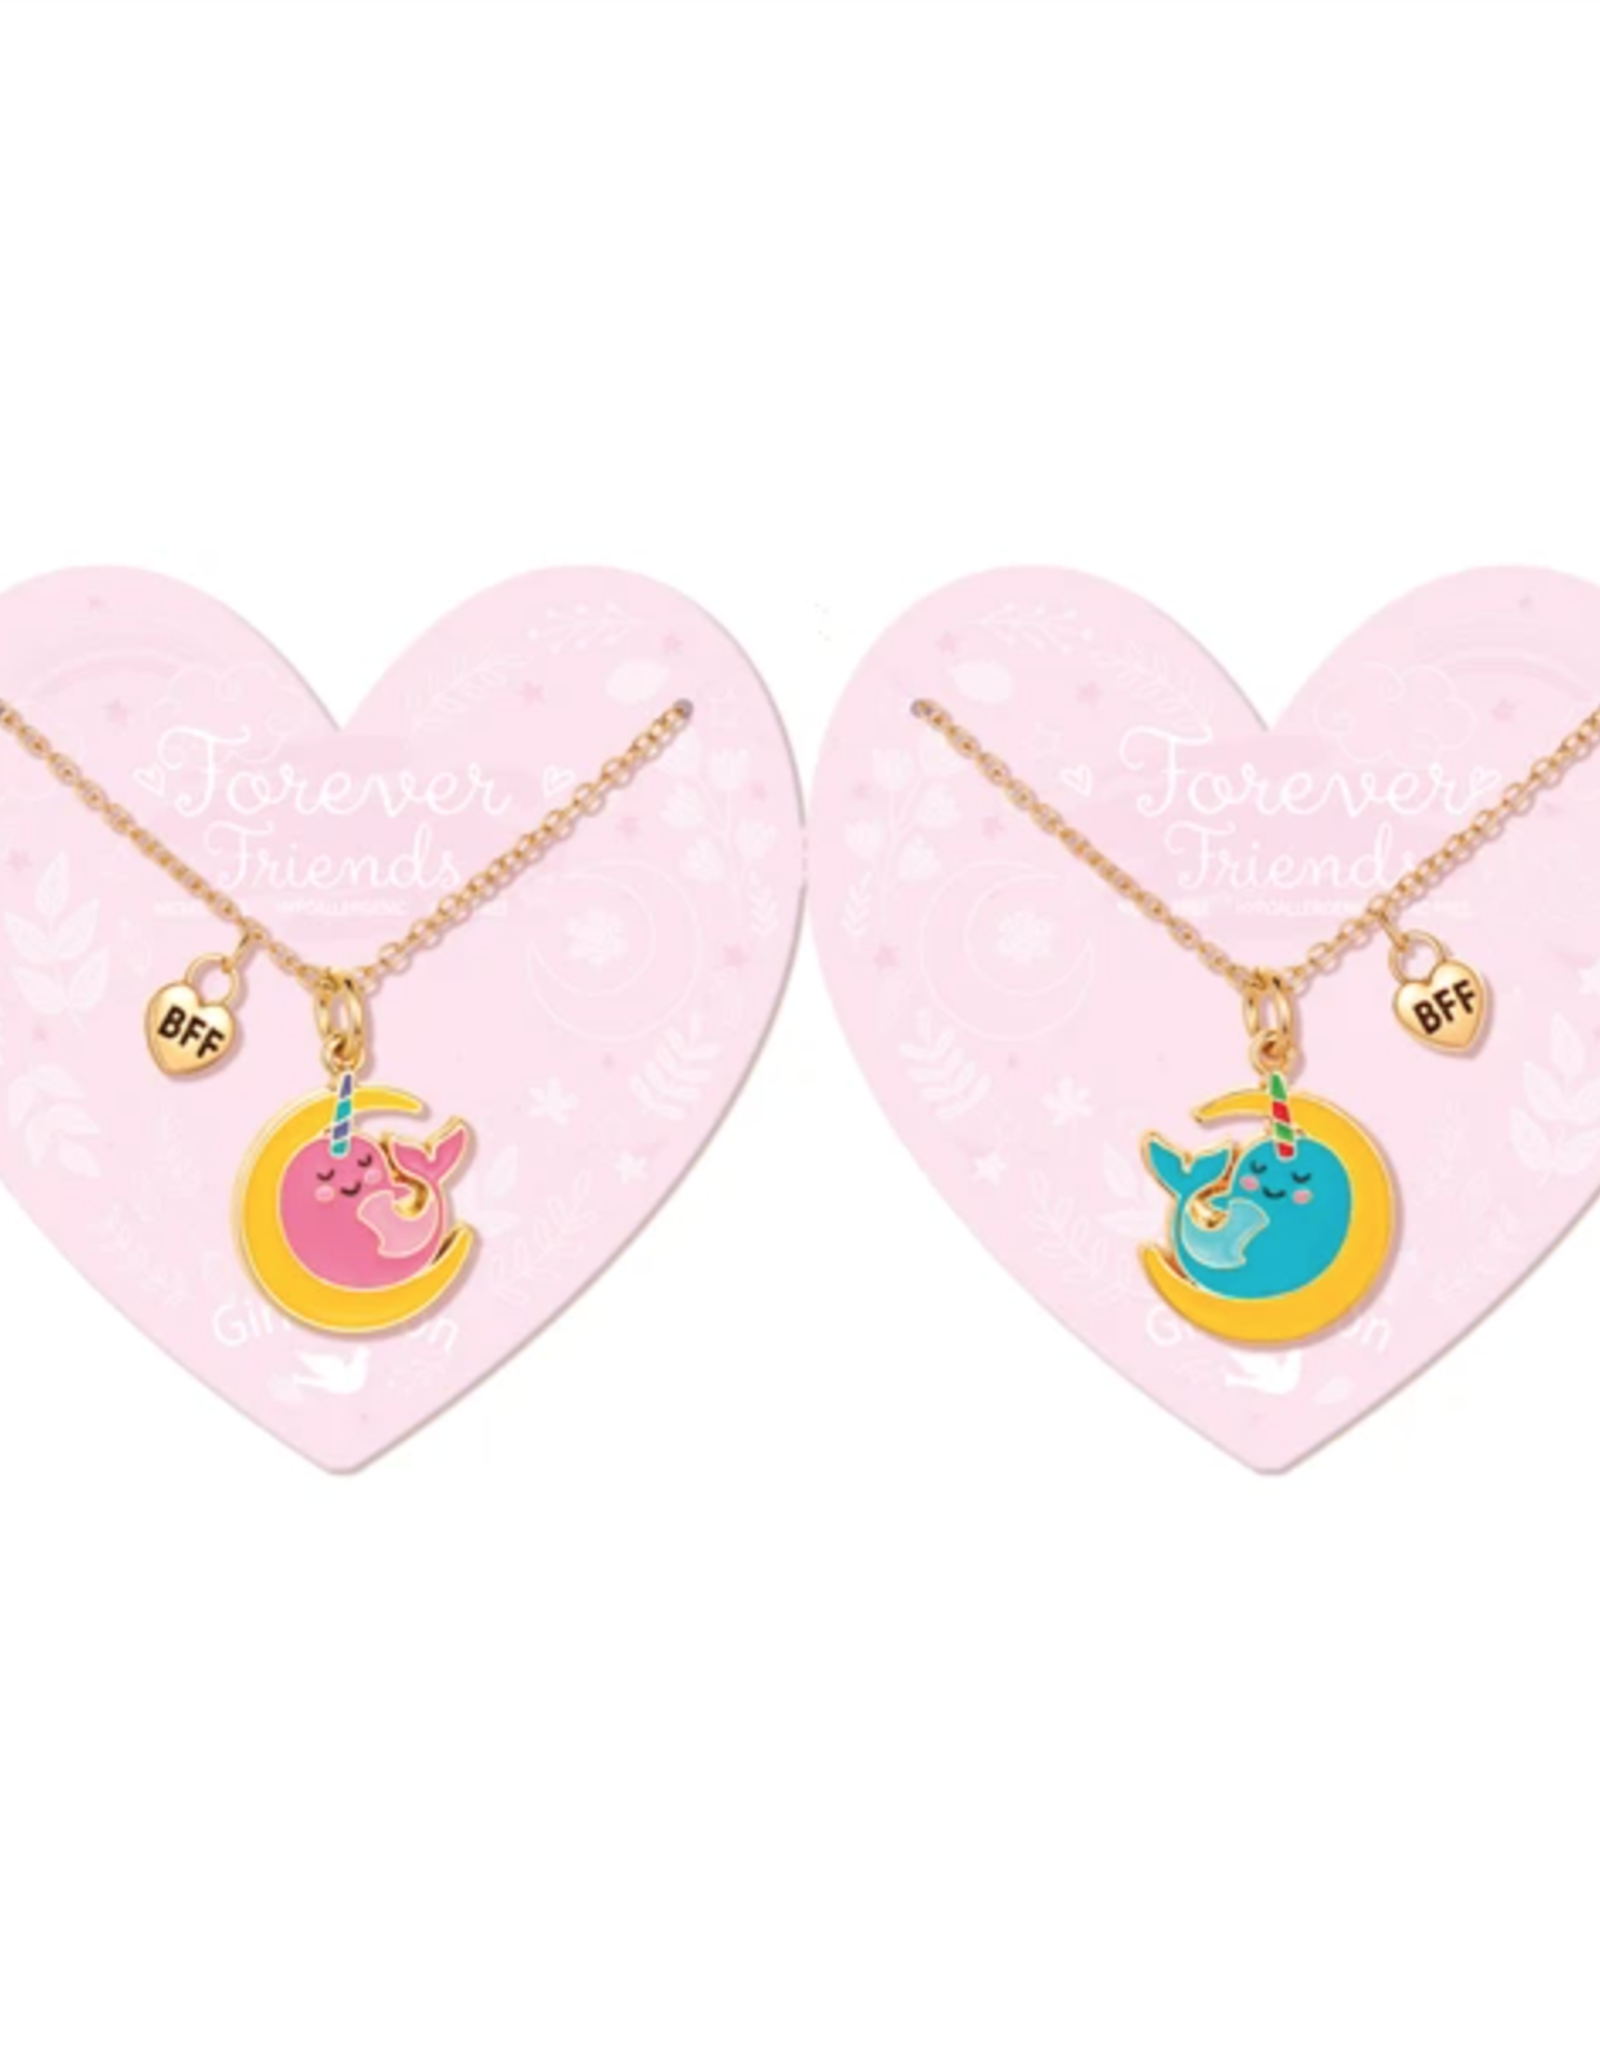 Girl Nation Friendship Necklaces - Team Magic